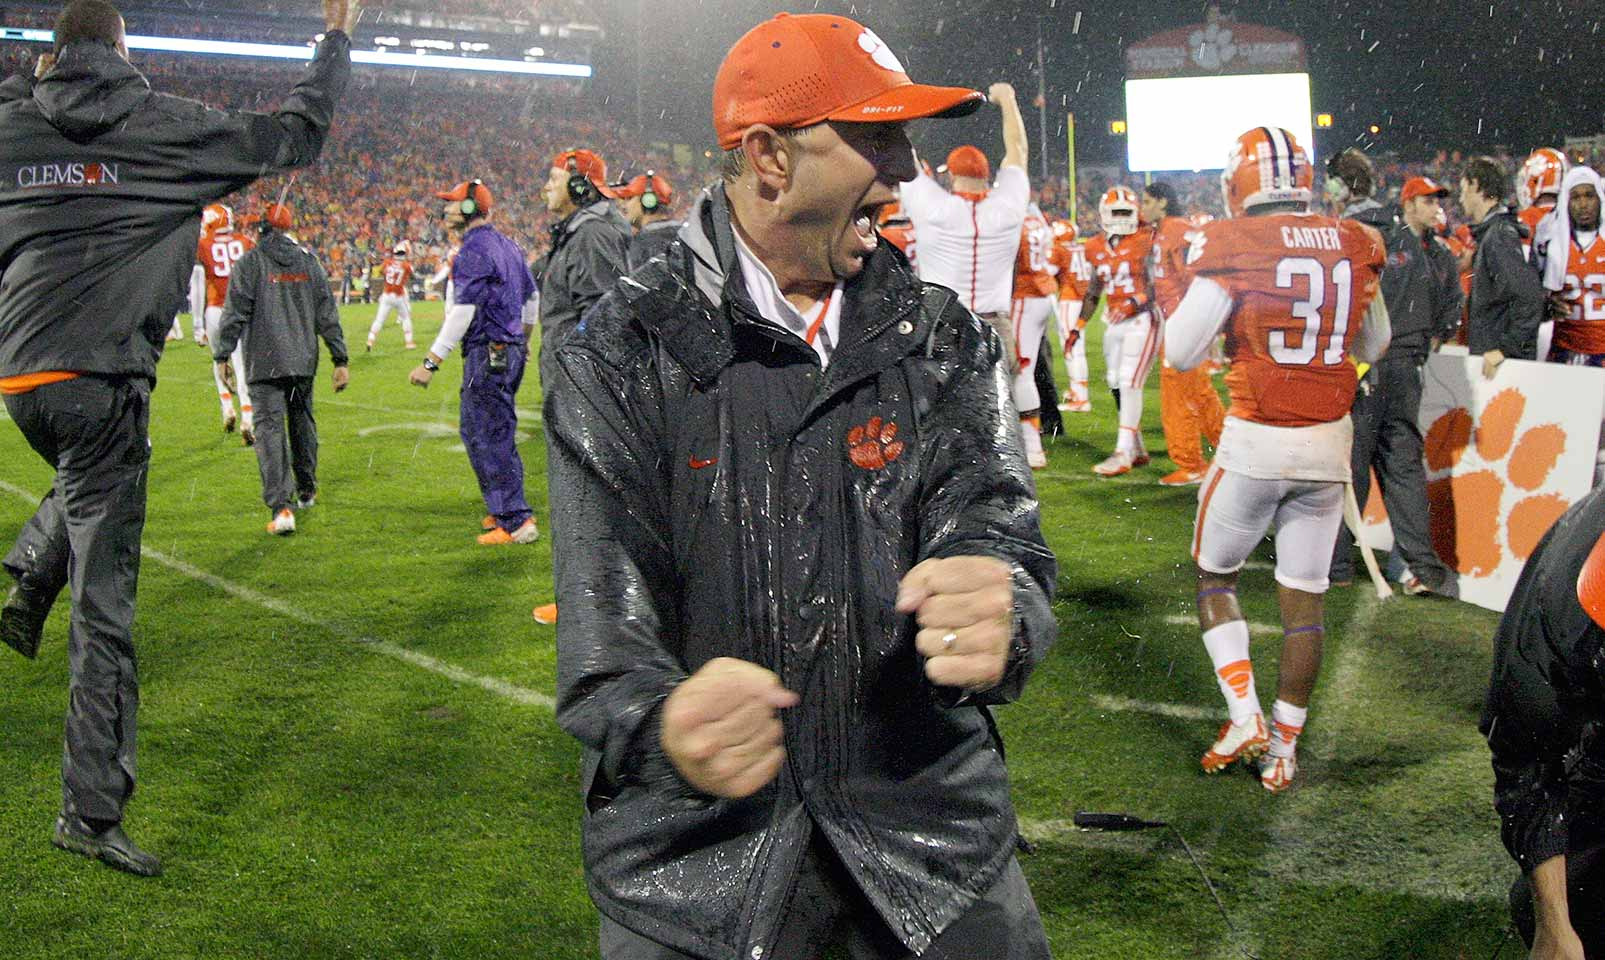 "Clemson 24, Notre Dame 22: The Tigers prevailed in pouring rain when Carlos Watkins wrapped up Fighting Irish quarterback DeShone Kizer on a potential game-tying two-point try with seven seconds left. A jubilant Dabo Swinney declared after the win, ""It was BYOG, bring your own guts."""